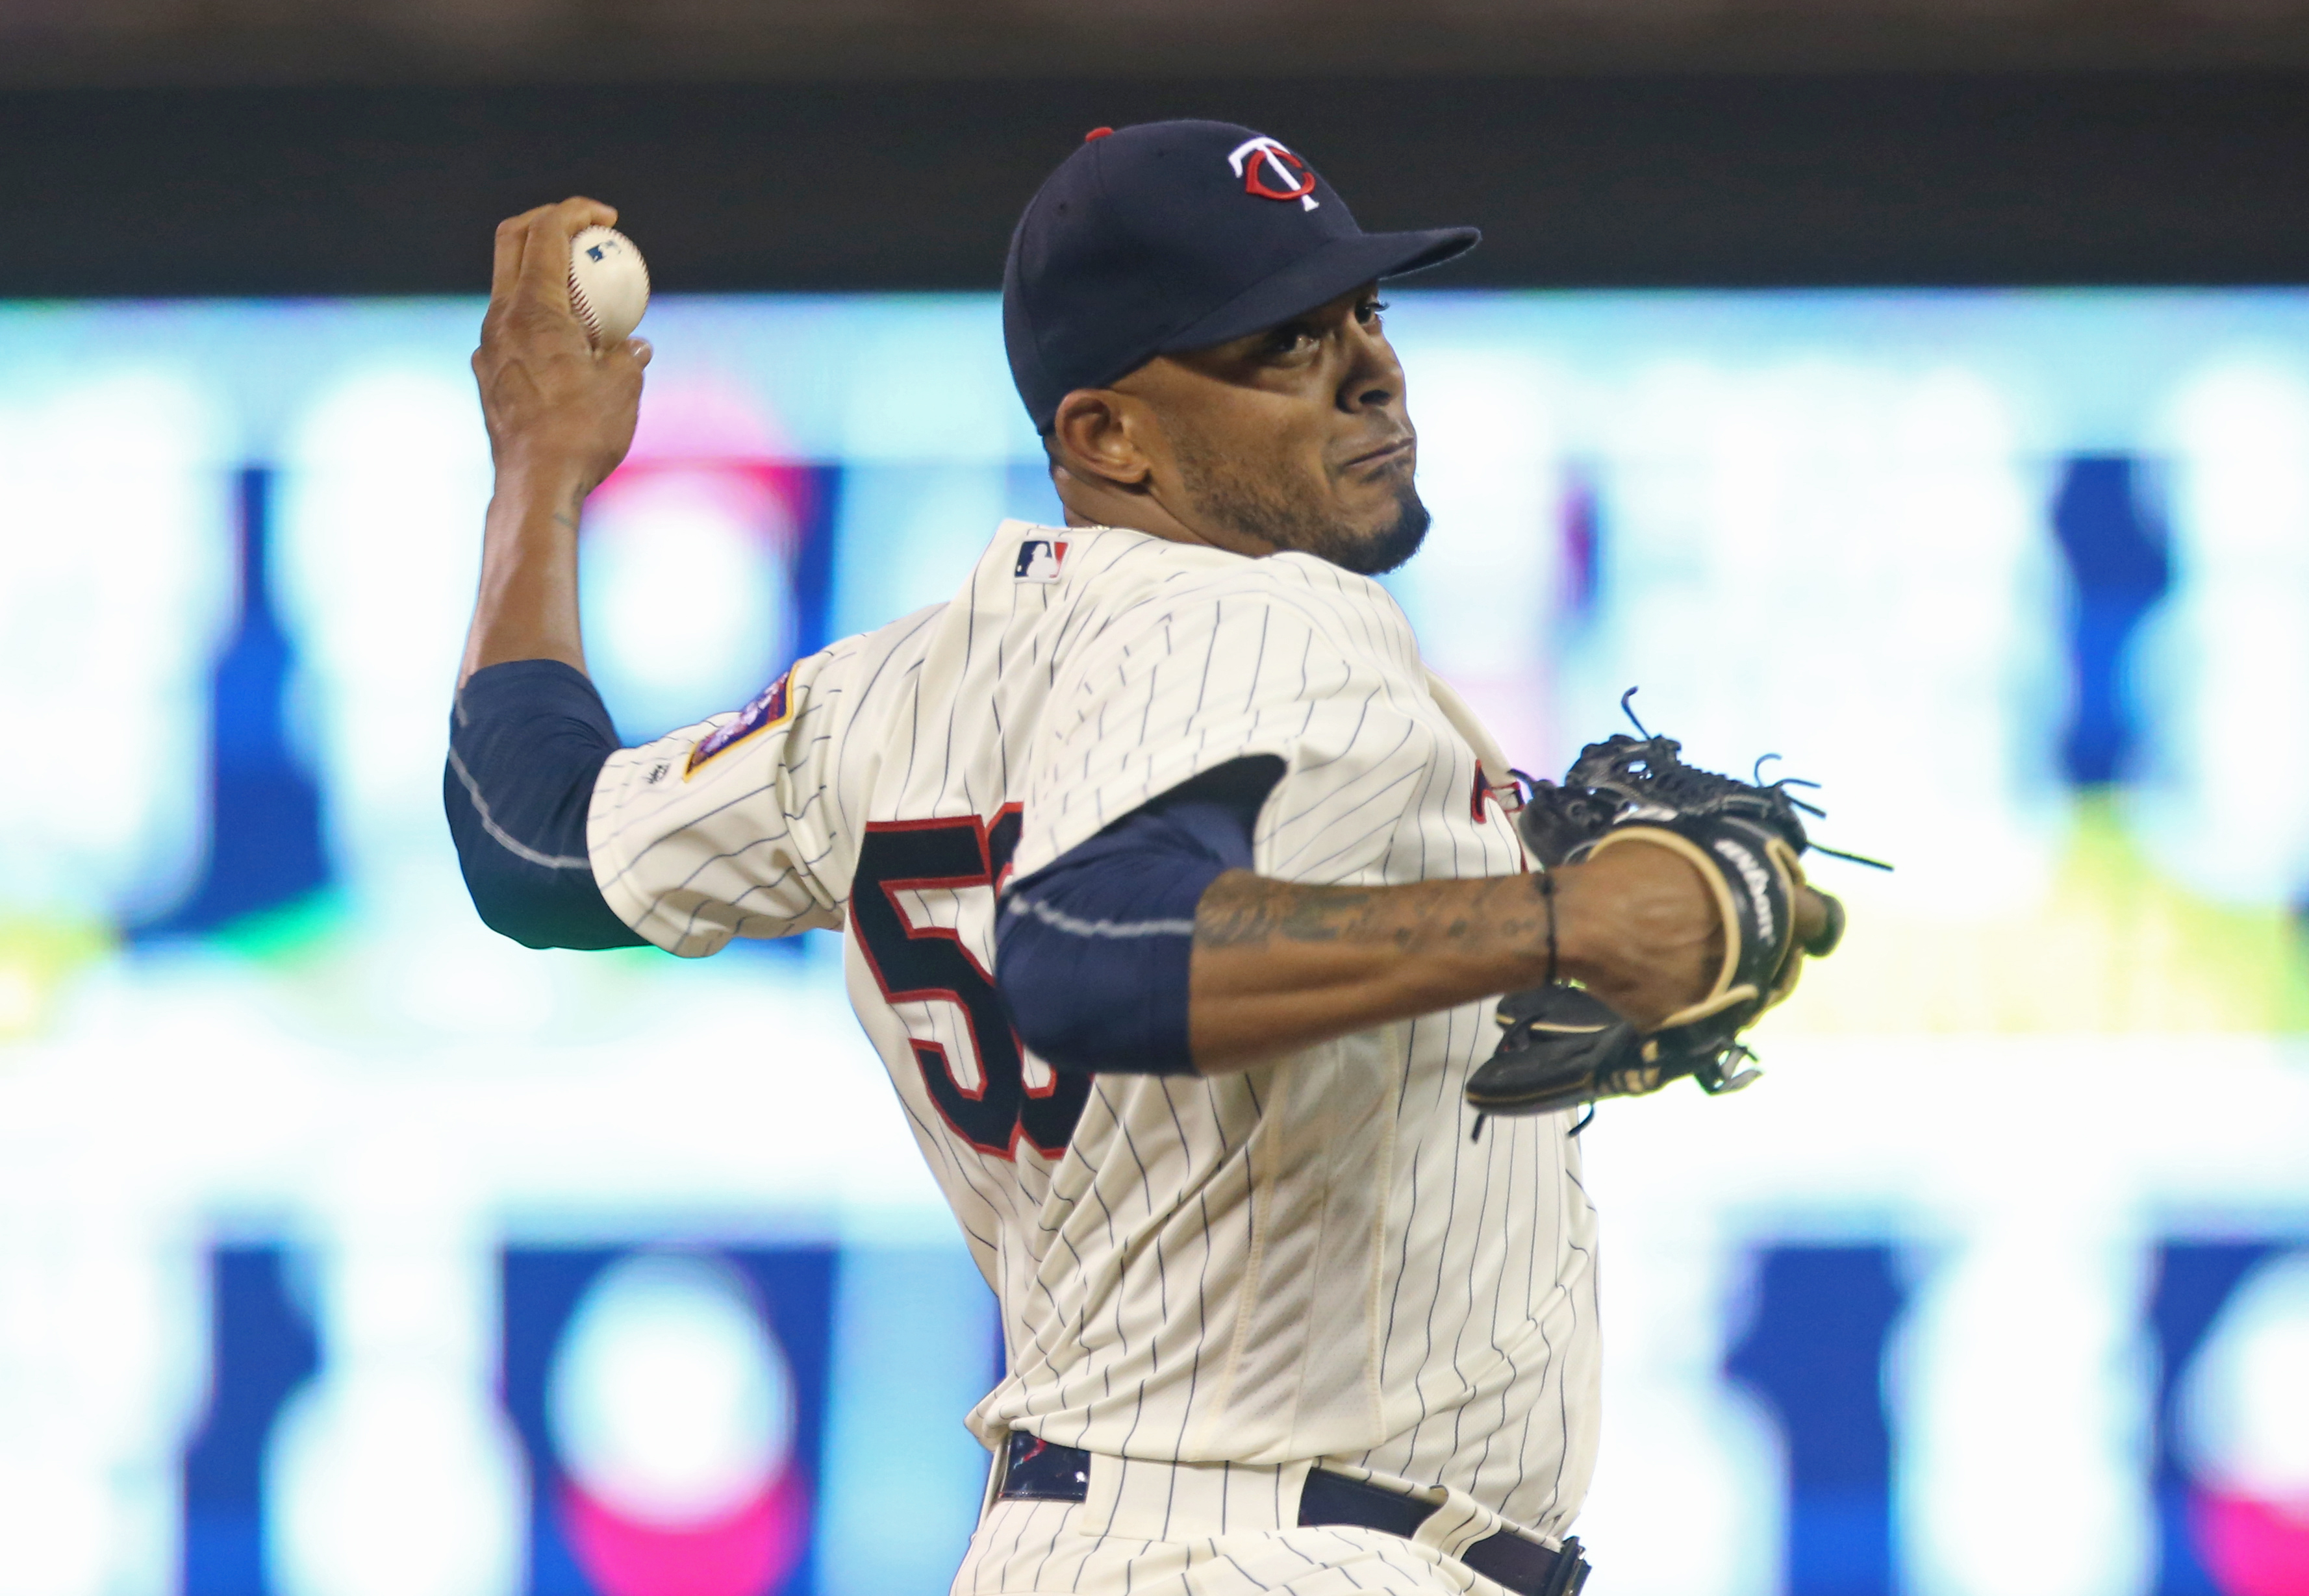 Minnesota Twins pitcher Fernando Abad throws against the Cleveland Indians in a baseball game Saturday, July 16, 2016, in Minneapolis. (AP Photo/Jim Mone)